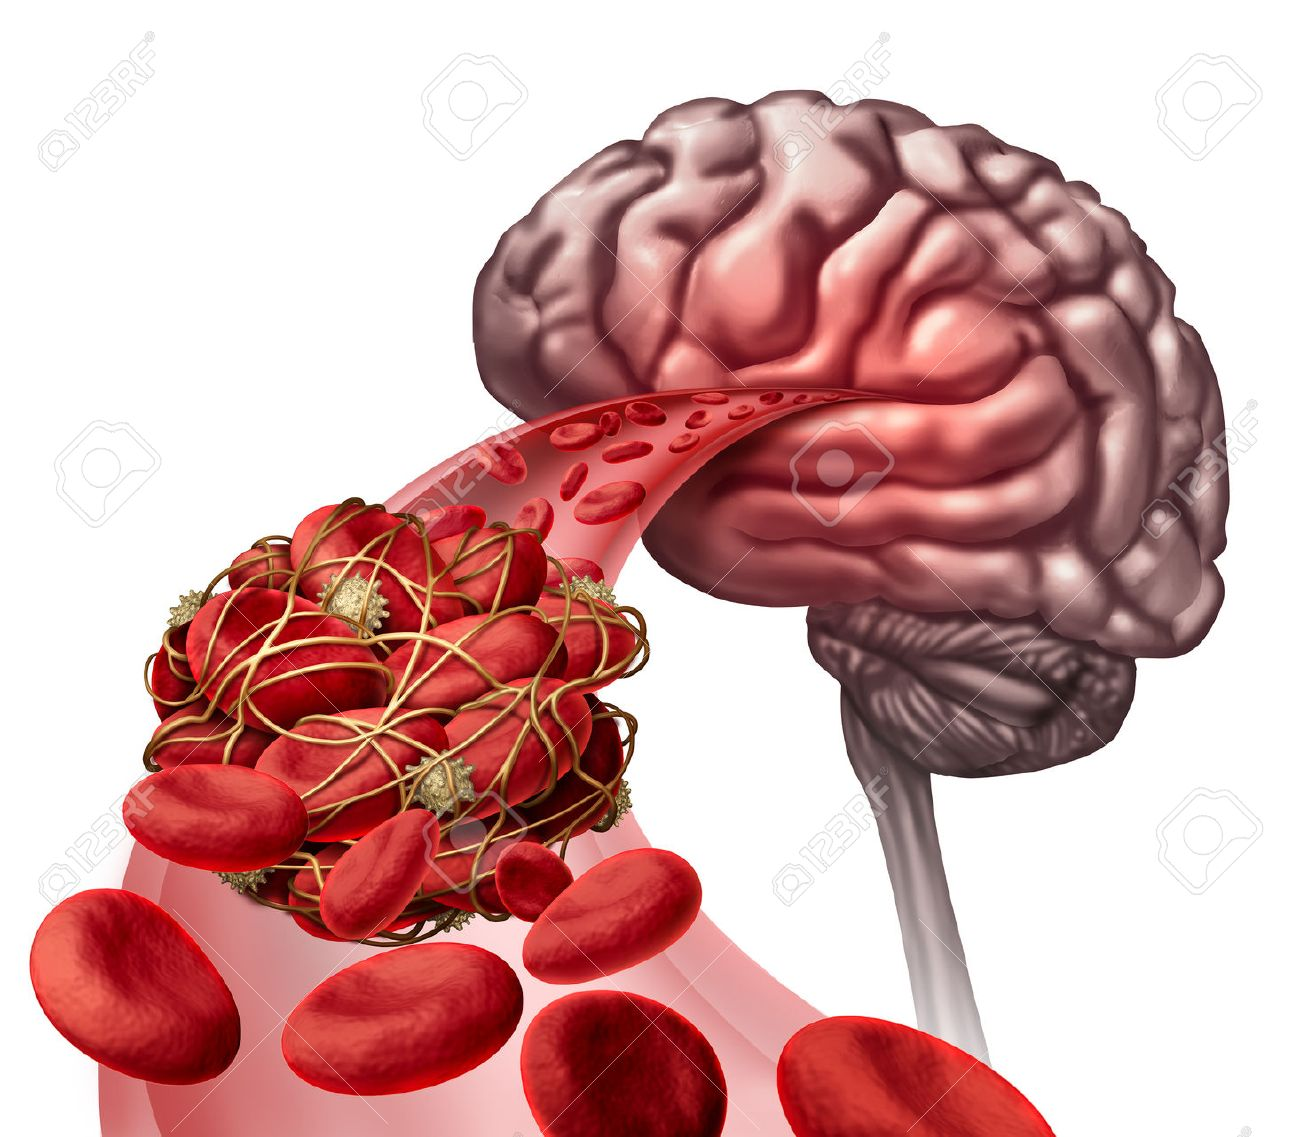 Brain blood clot medical concept as 3D illustration blood cells blocked by an artery blockage thrombus causing a blockage of blood flow to the neurology anatomy. Stock Illustration - 55128017